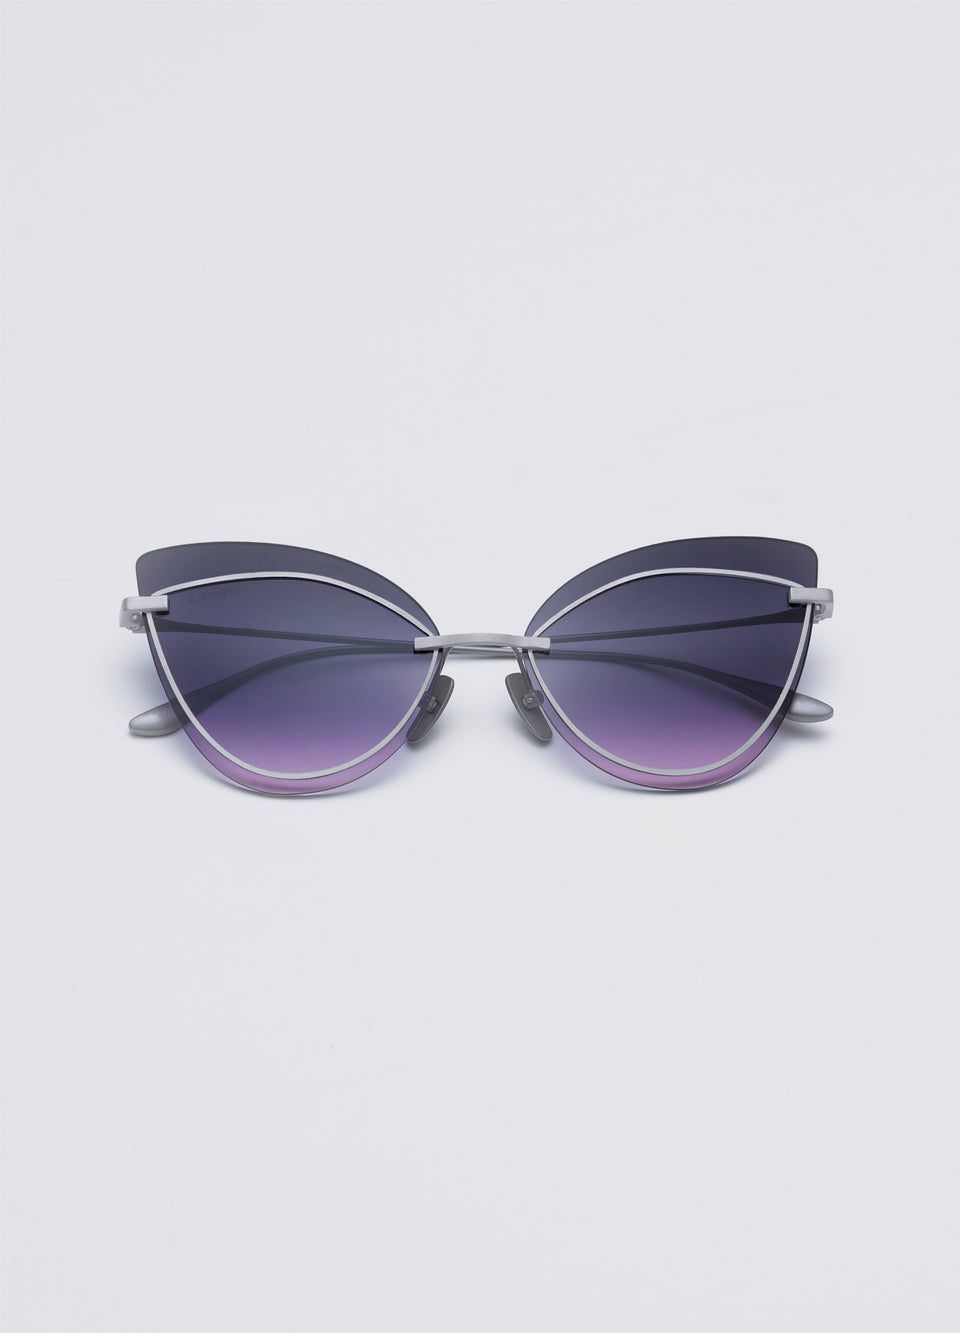 A SOCIETY LINDA - Purple Titanium Cat-Eye Sunglasses Front